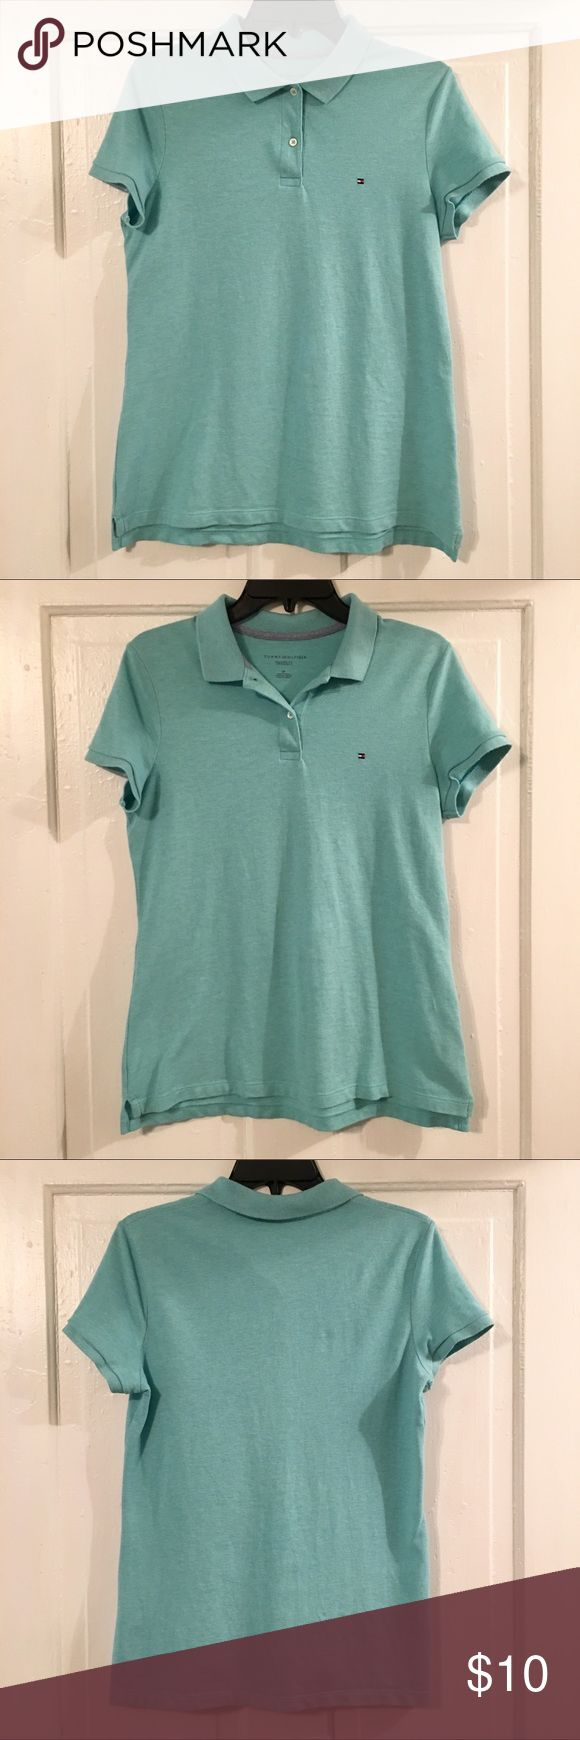 🎉SALE!!🎉 Tommy Hilfiger Relaxed Fit Blue Polo 🎉SALE!!🎉 Tommy Hilfiger Short Sleeve Polo Shirt Size Small Relaxed Fit Light Blue(color of the last photo) 94% Cotton and 6% Elastane Machine Washable Excellent Condition!  **Sale ends on Sunday(12/3)** Tommy Hilfiger Tops